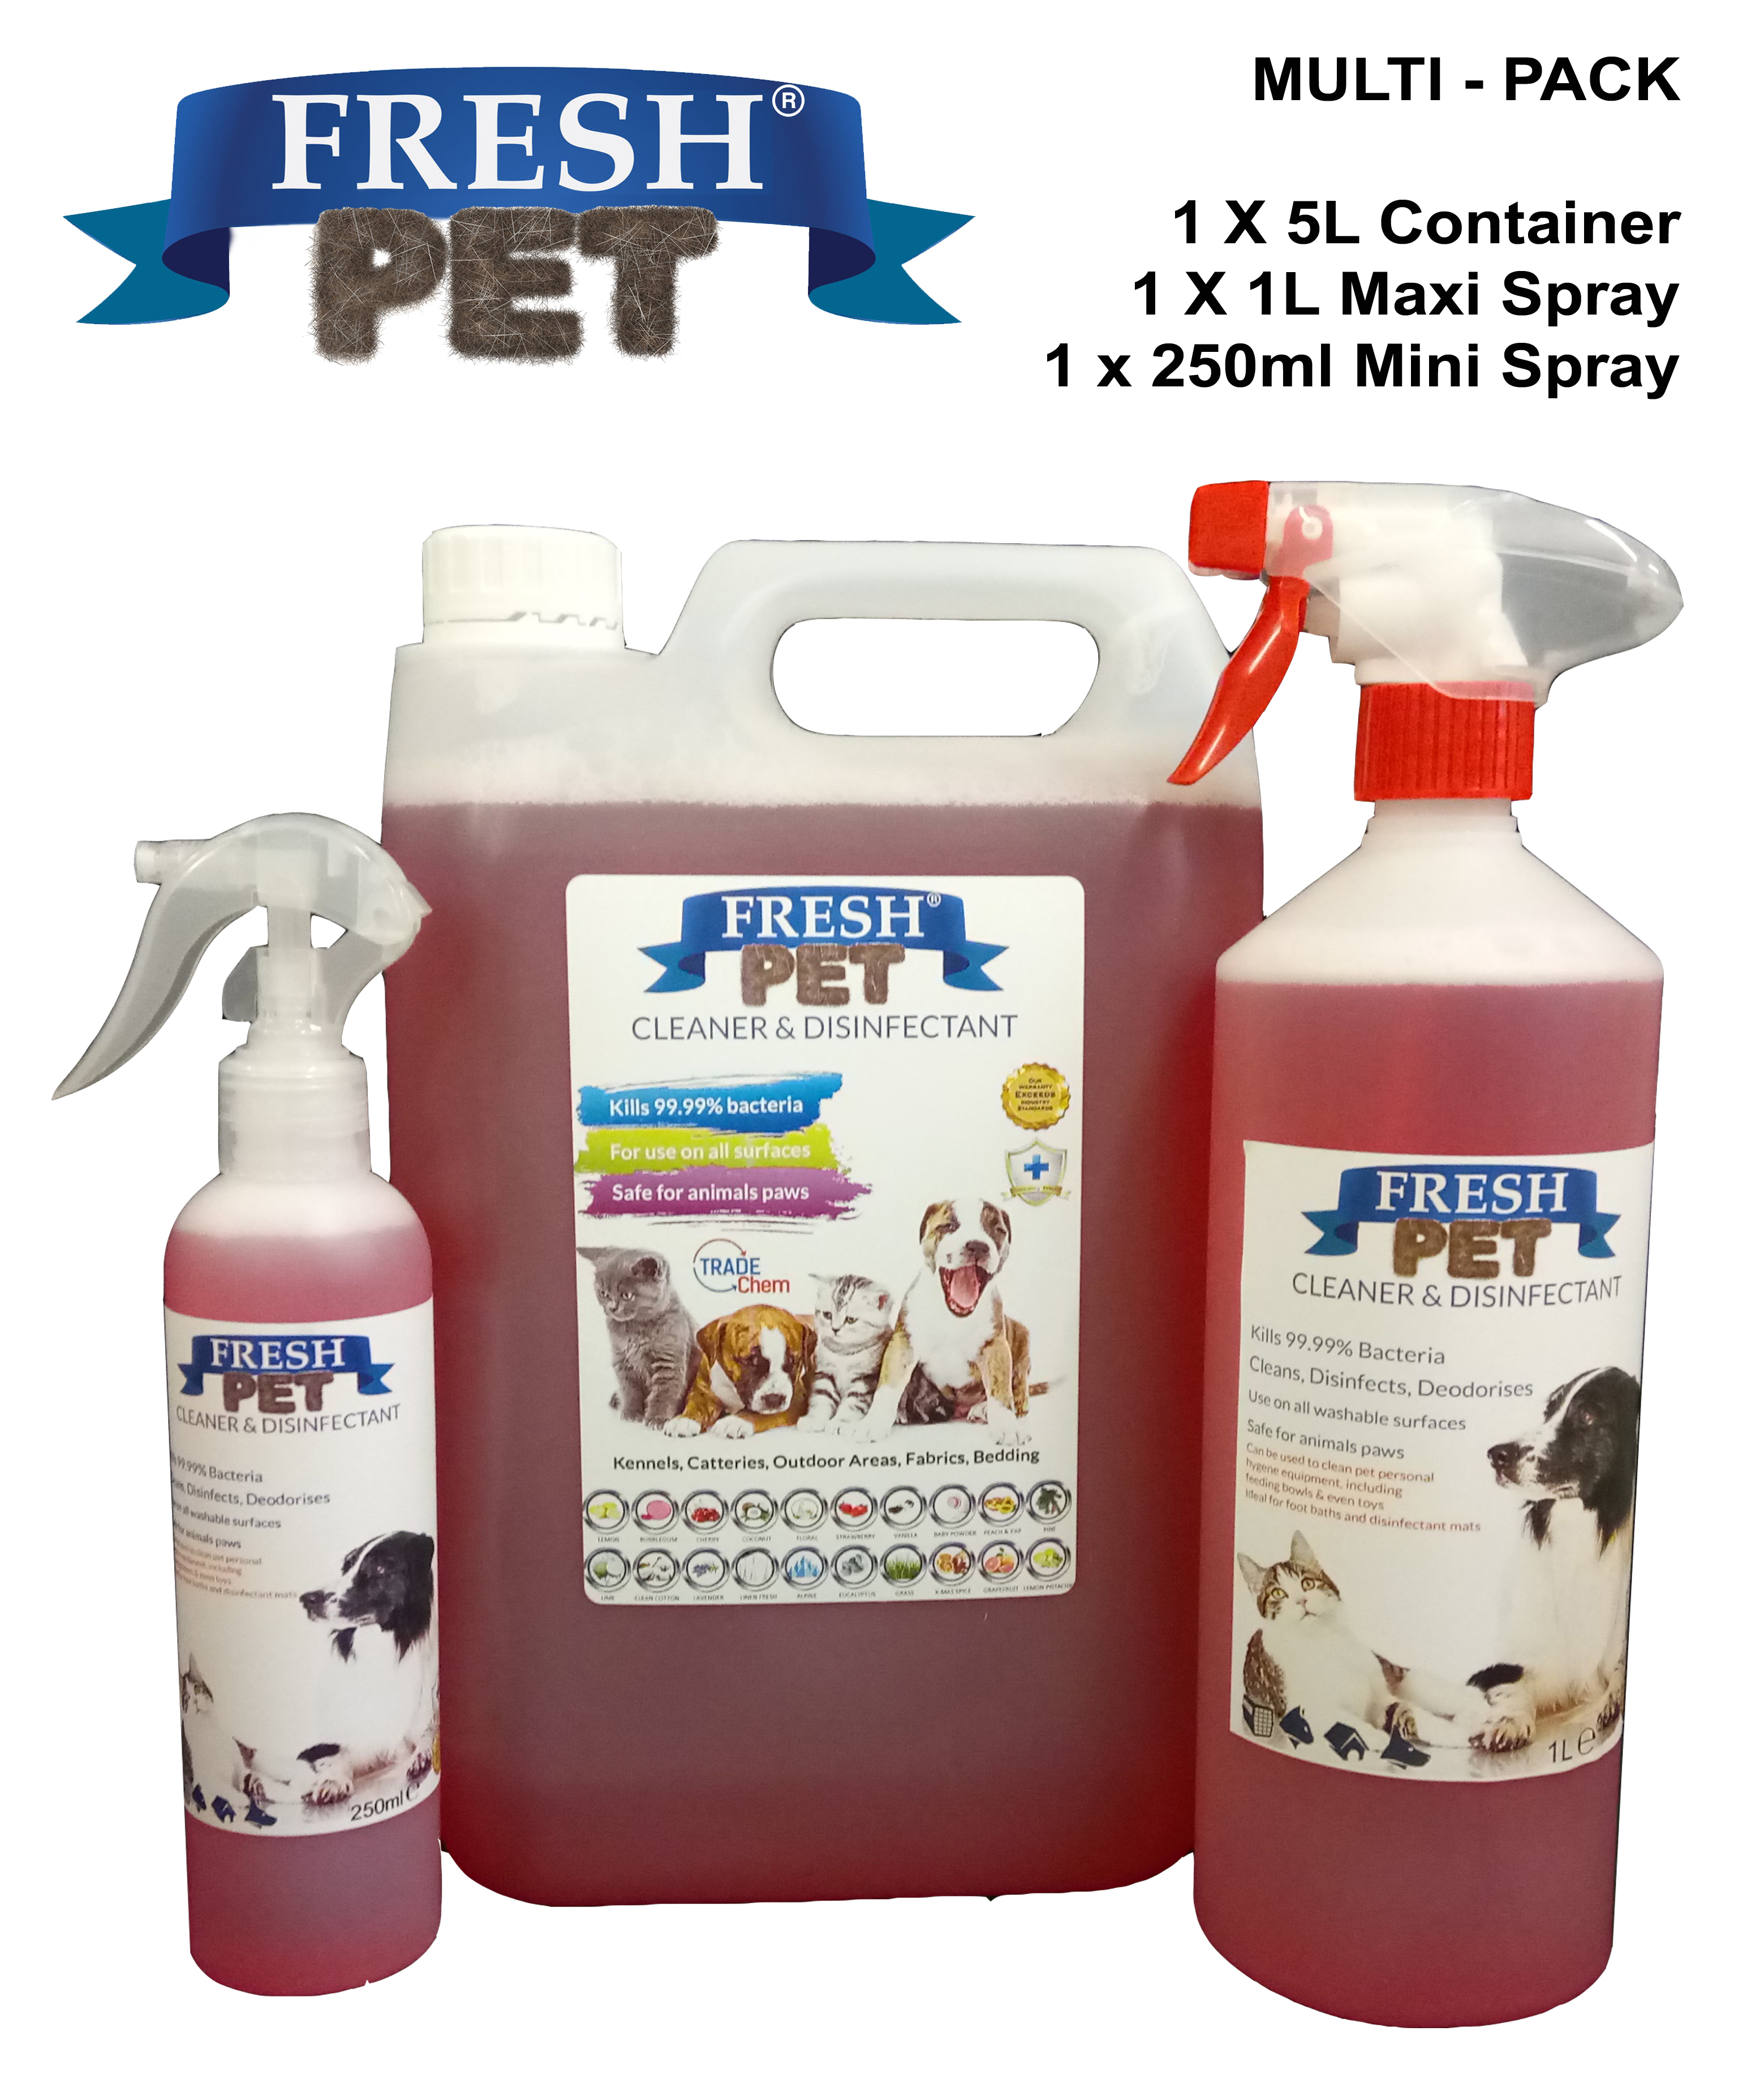 Fresh Pet Kennel Cattery Disinfectant Multi Pack